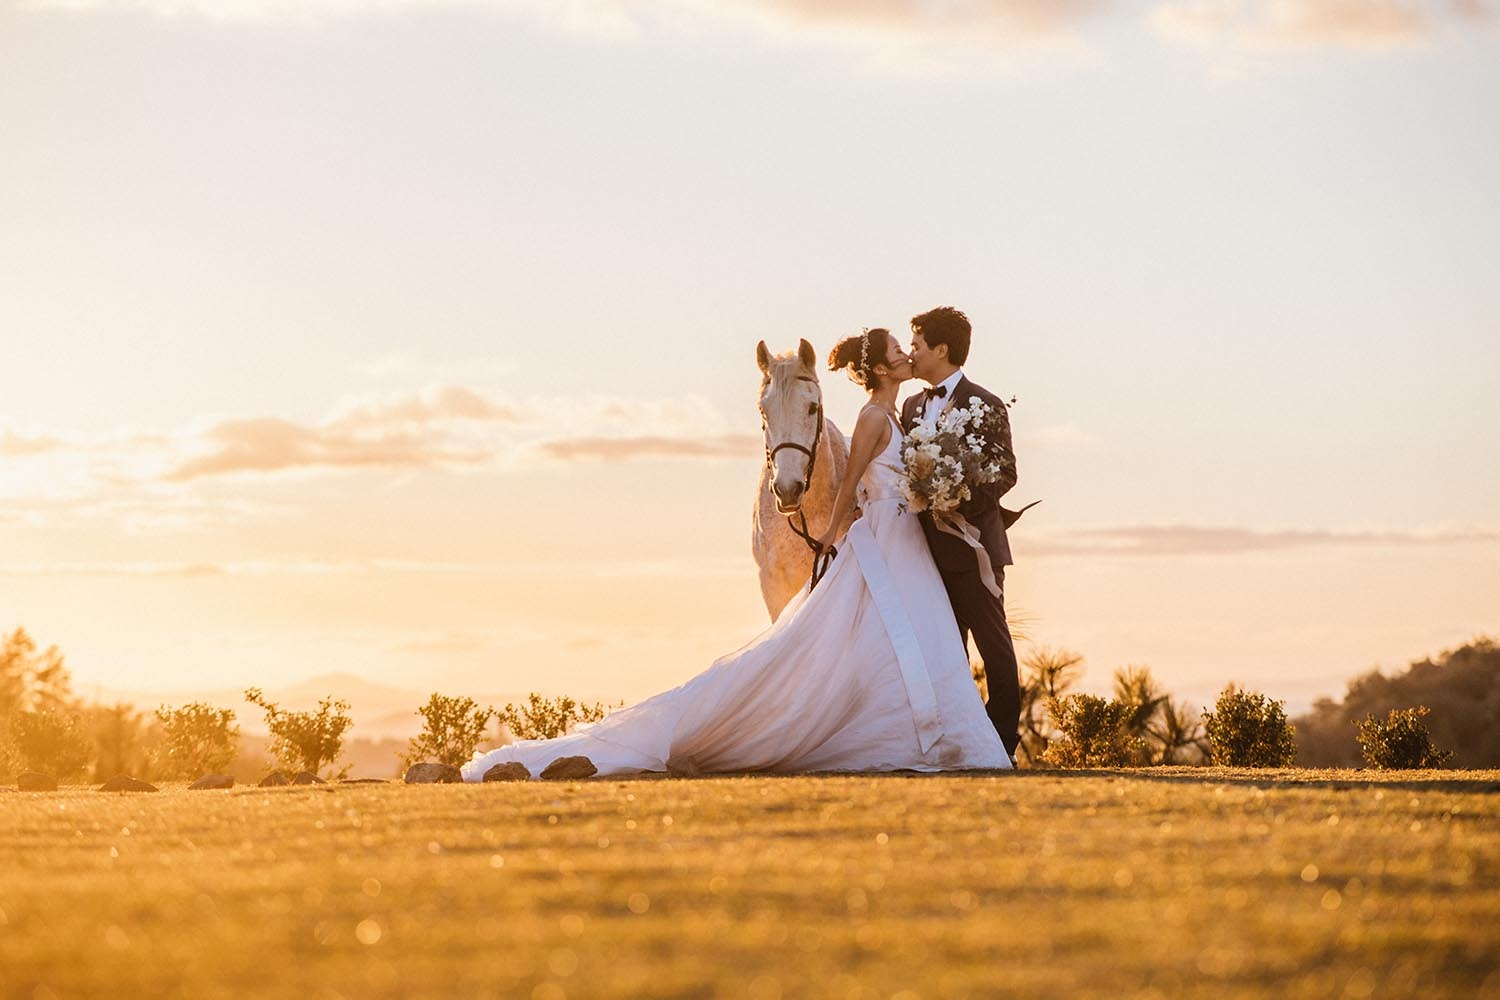 sweet sunset wedding photo idea